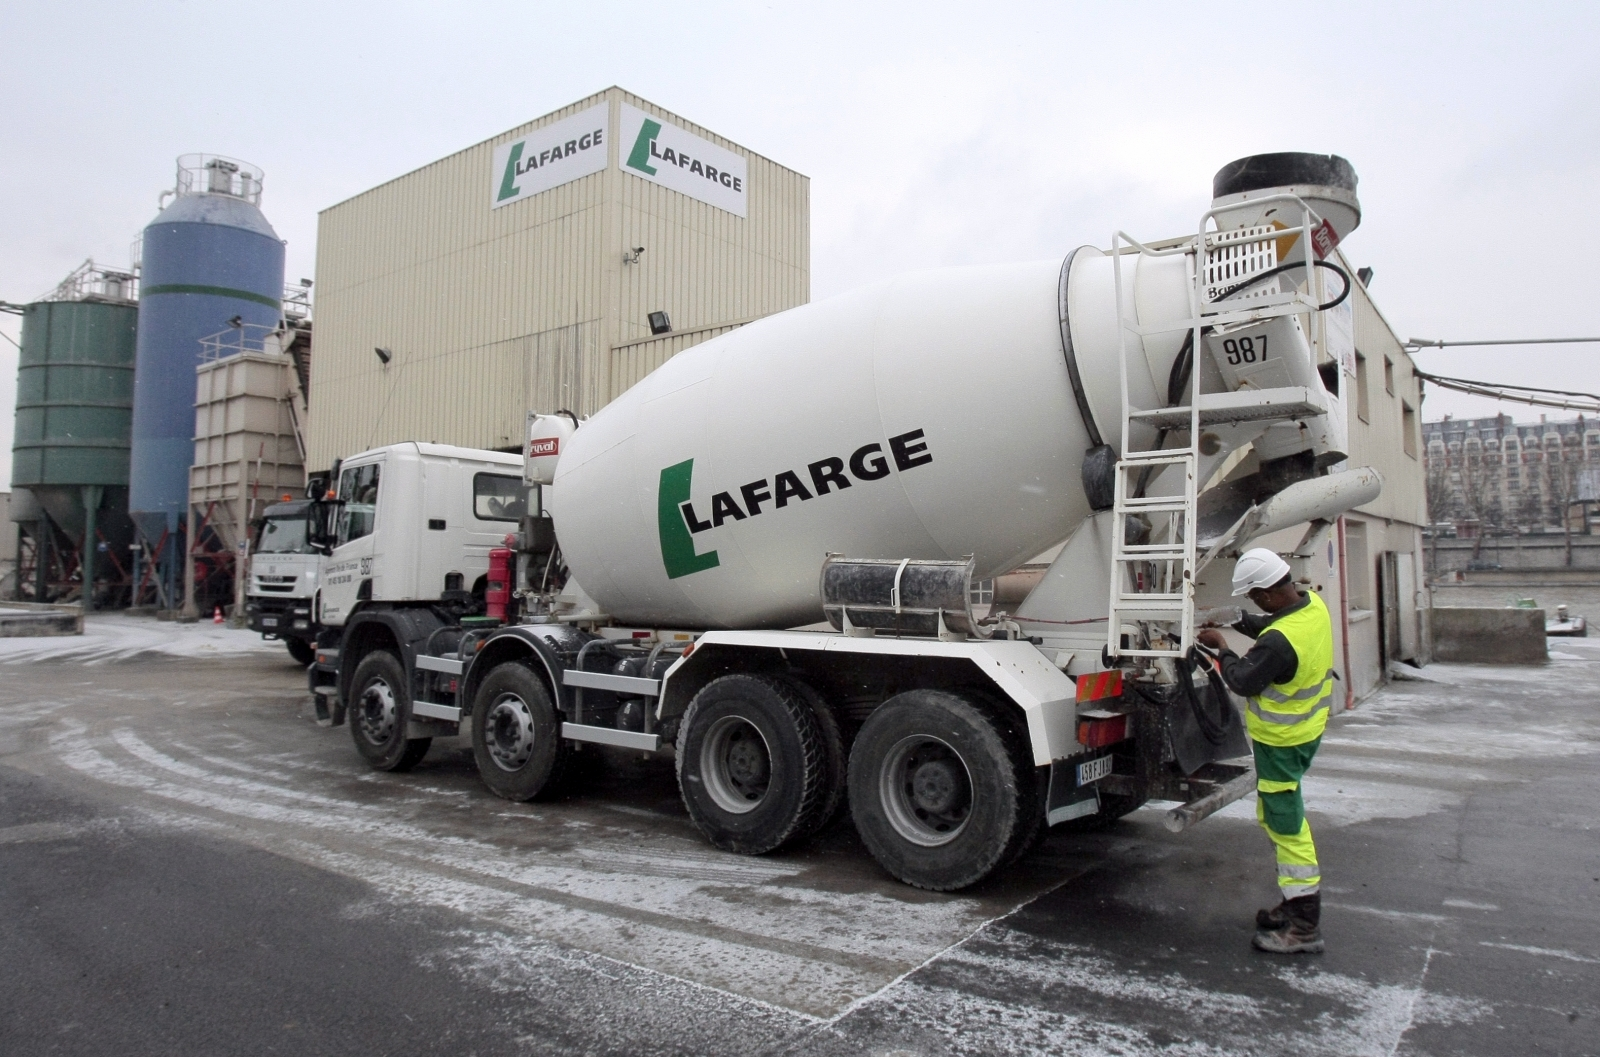 petrol bomb found under paris truck of firm accused of funding isis